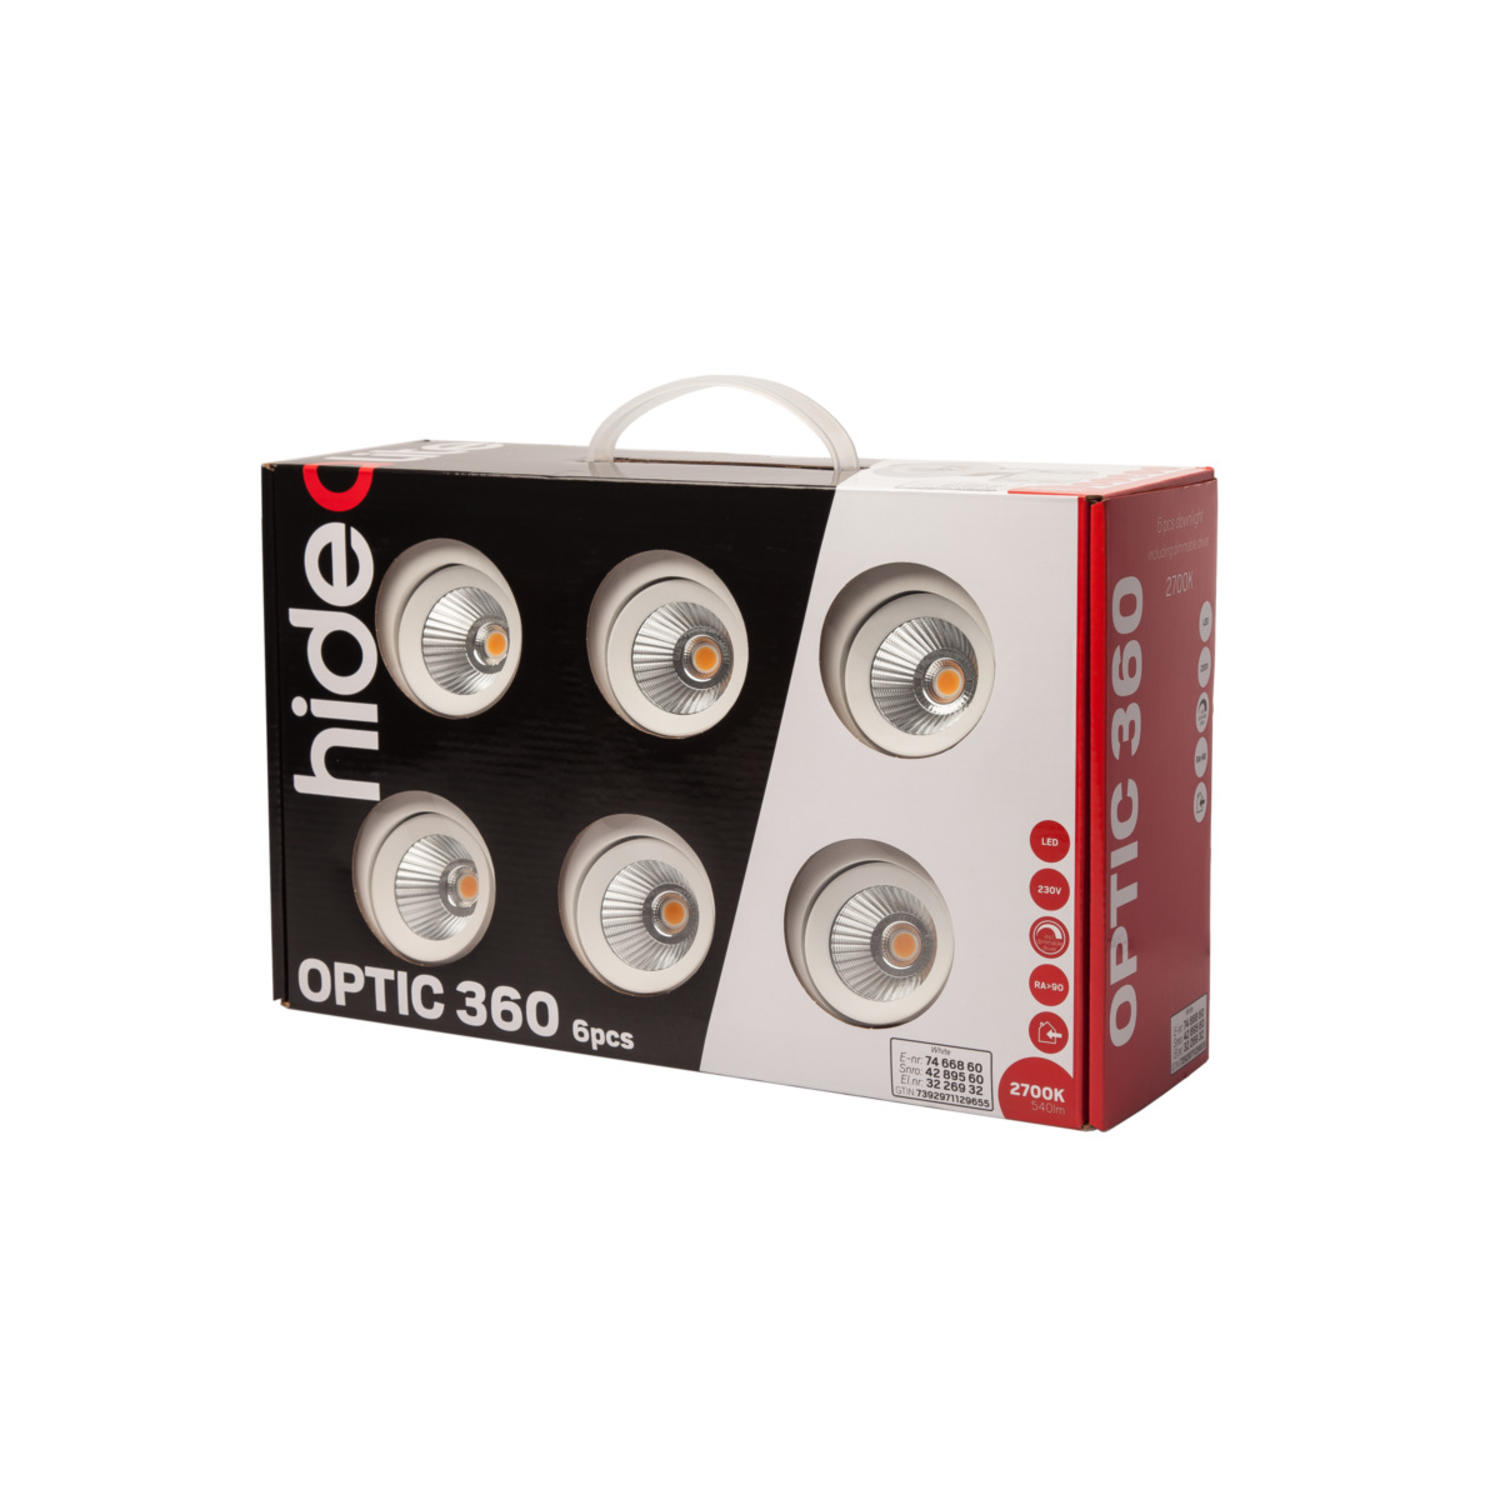 Optic 360 6-pack Vit Tune